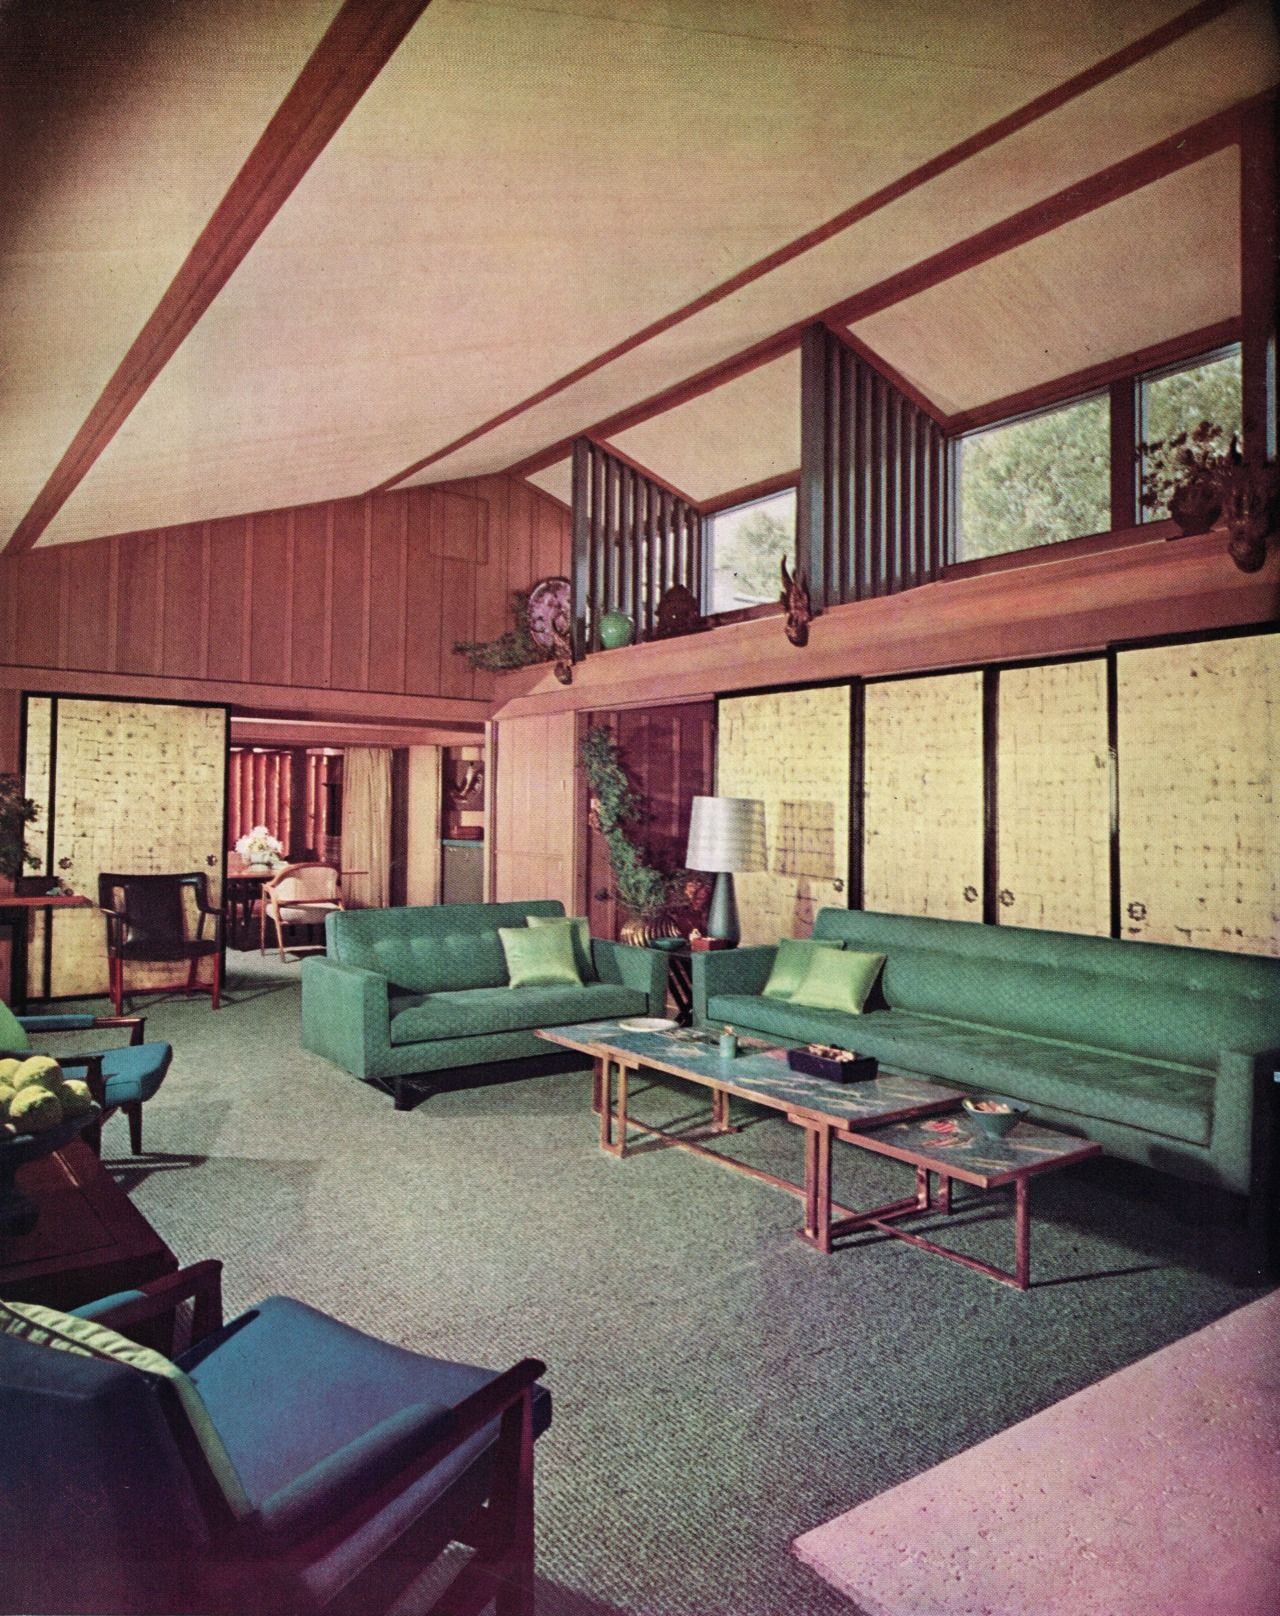 The mid century modern style is hugely popular right now and rightly - Retro Midcentury Modern Interior Design Home Design Interior Design 2012 Room Design House Design Designs